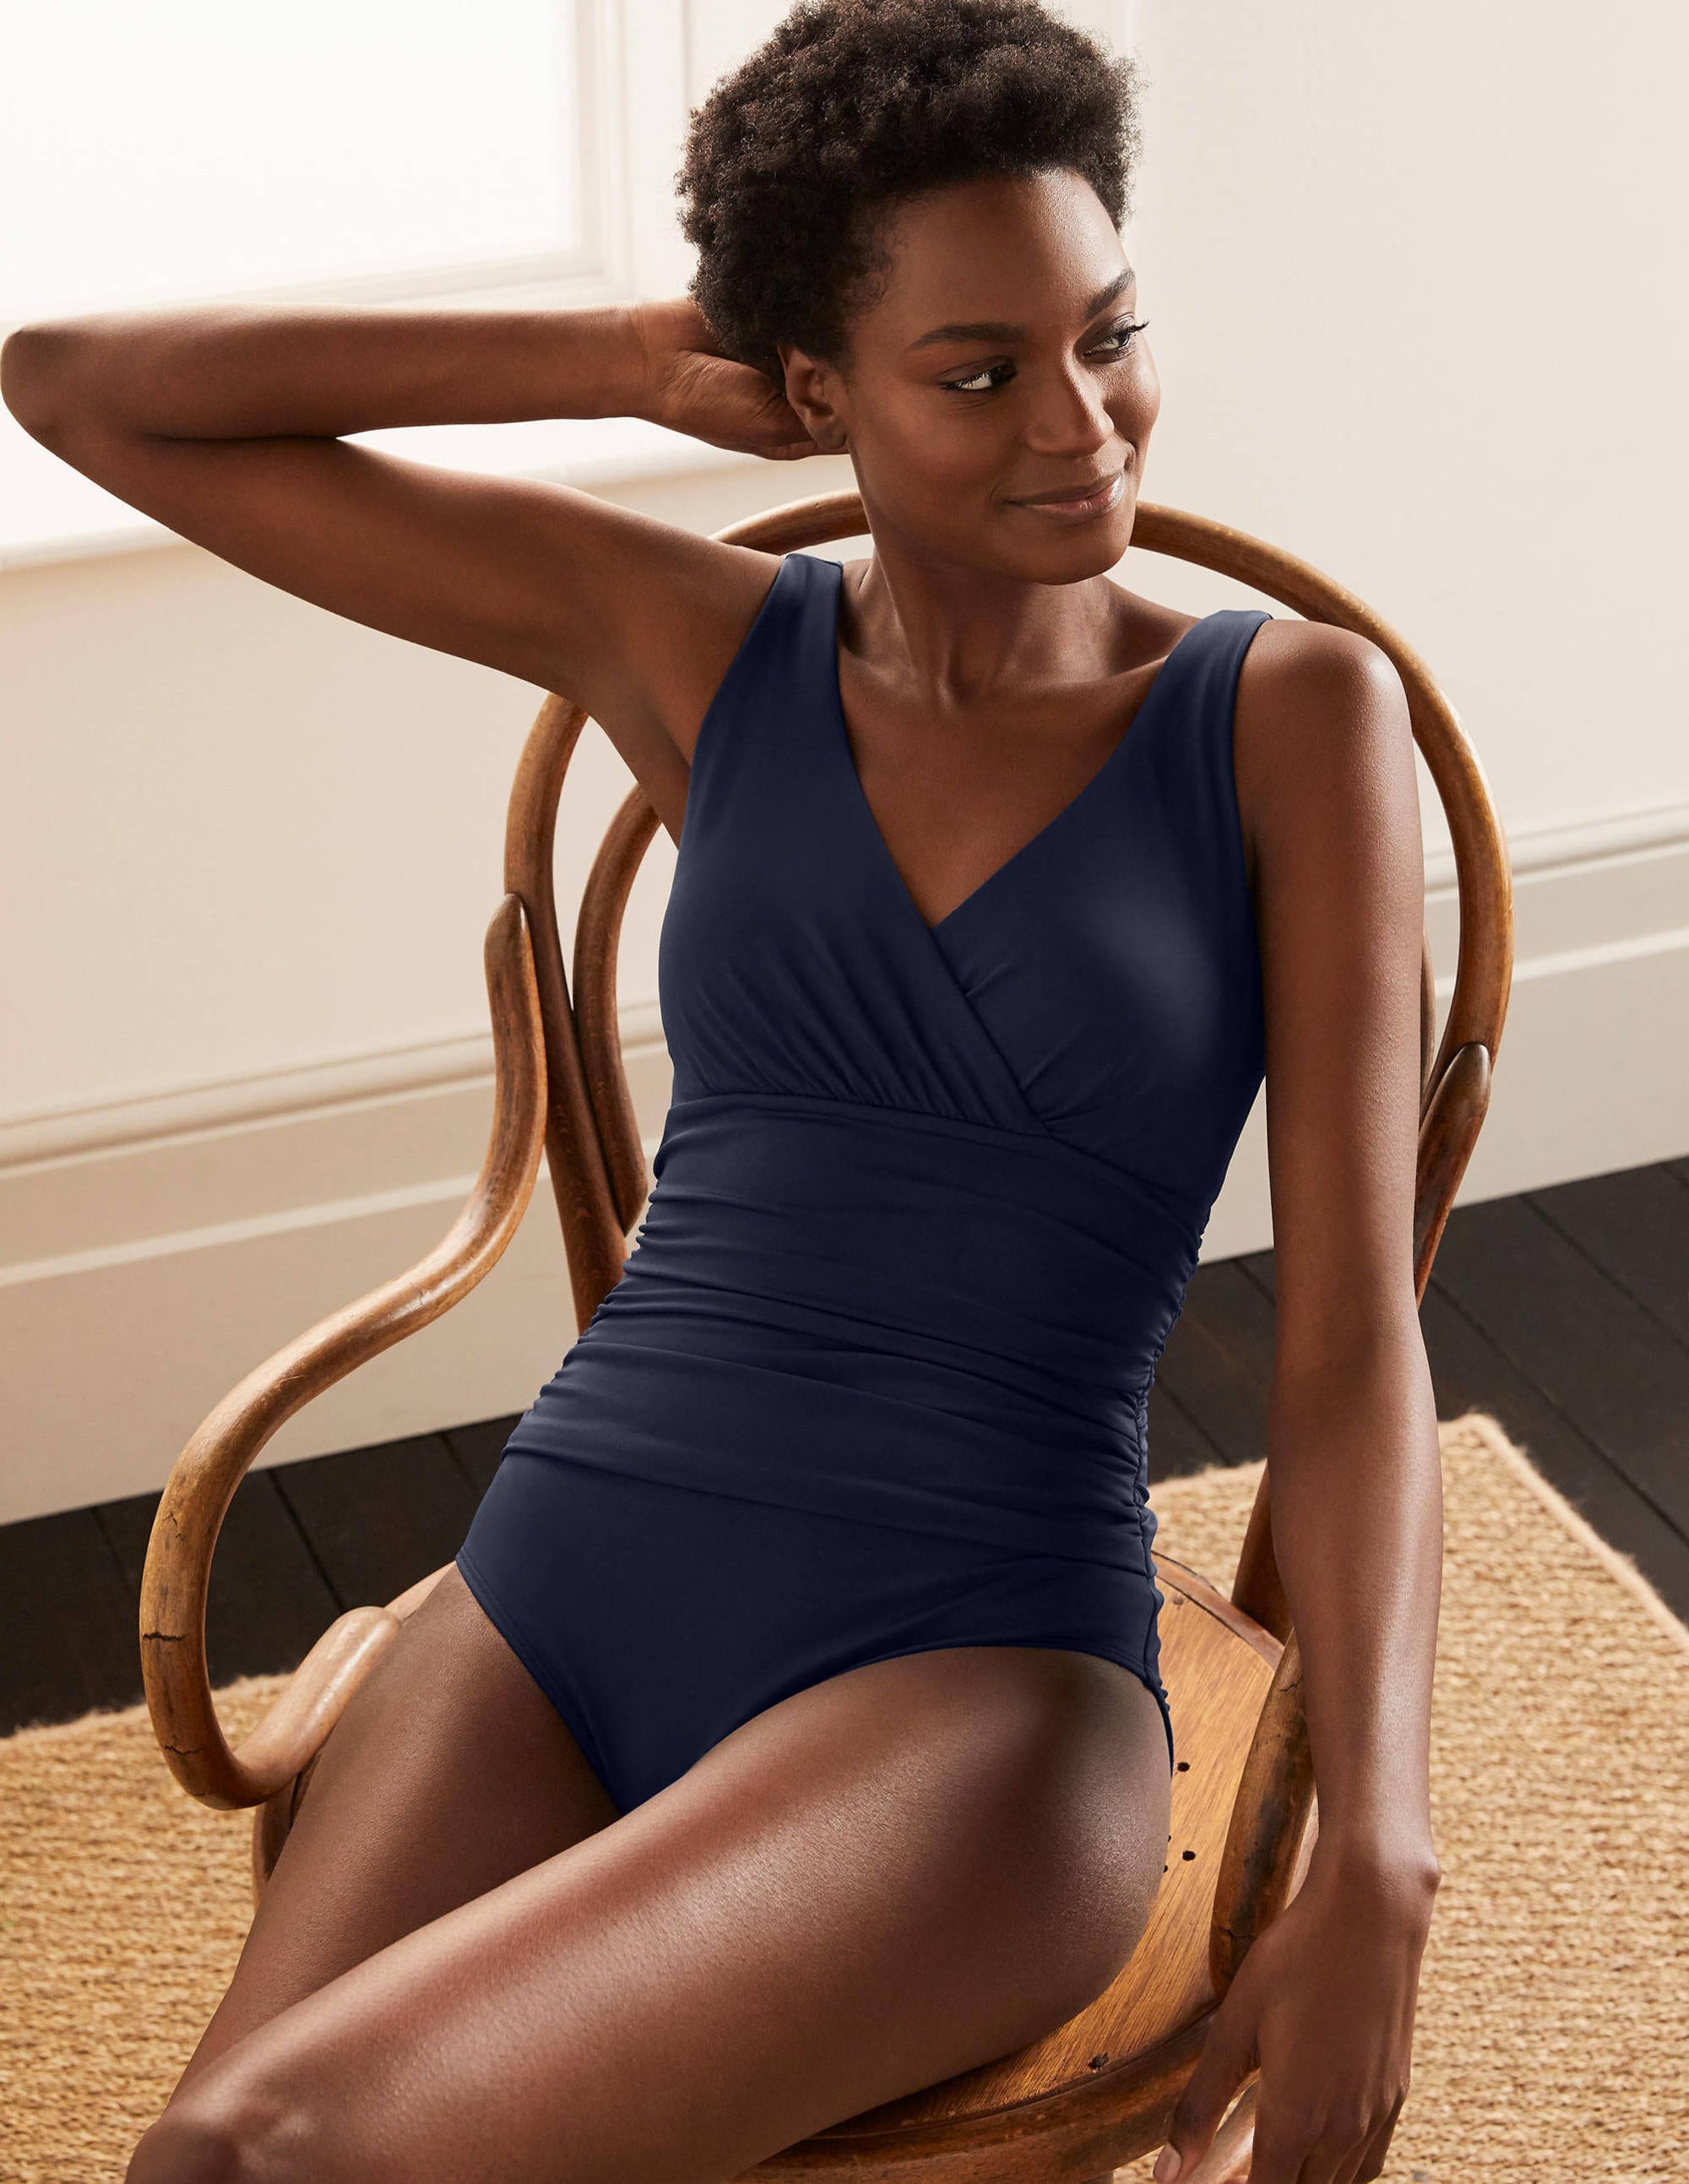 Boden Talamanca Swimsuit - French Navy